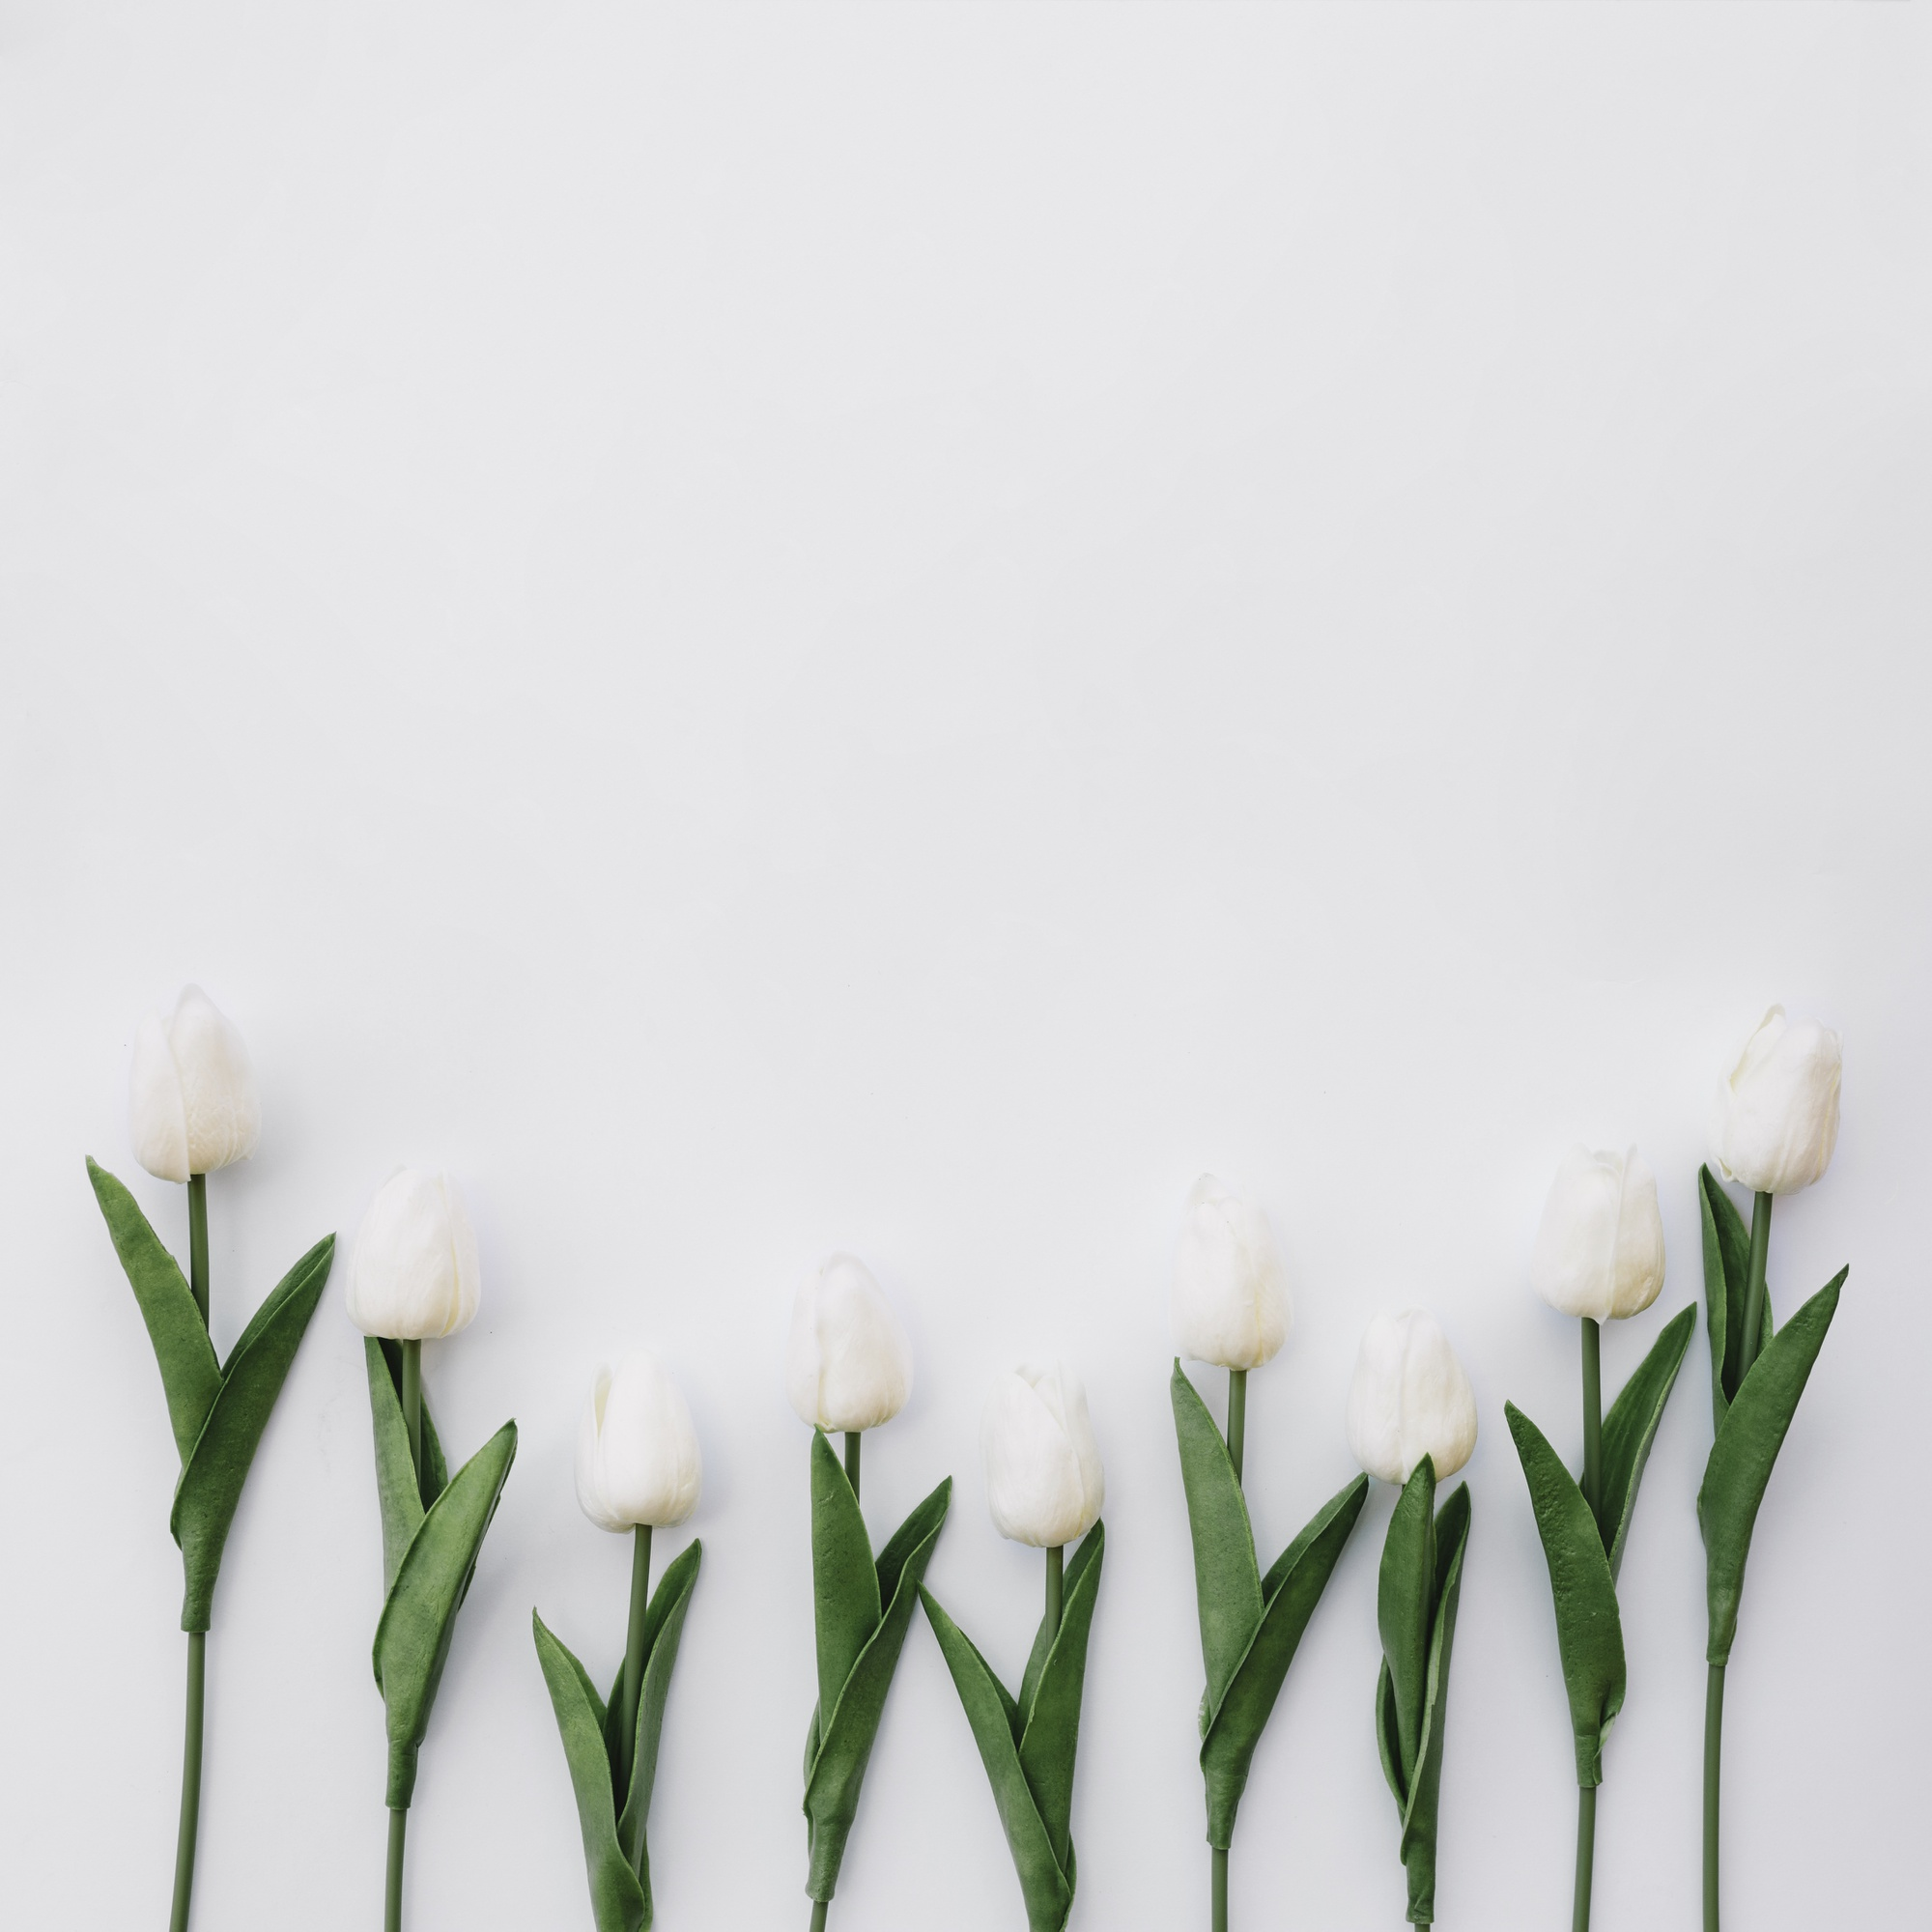 Nice composition with beautiful tulips on white background with space on top